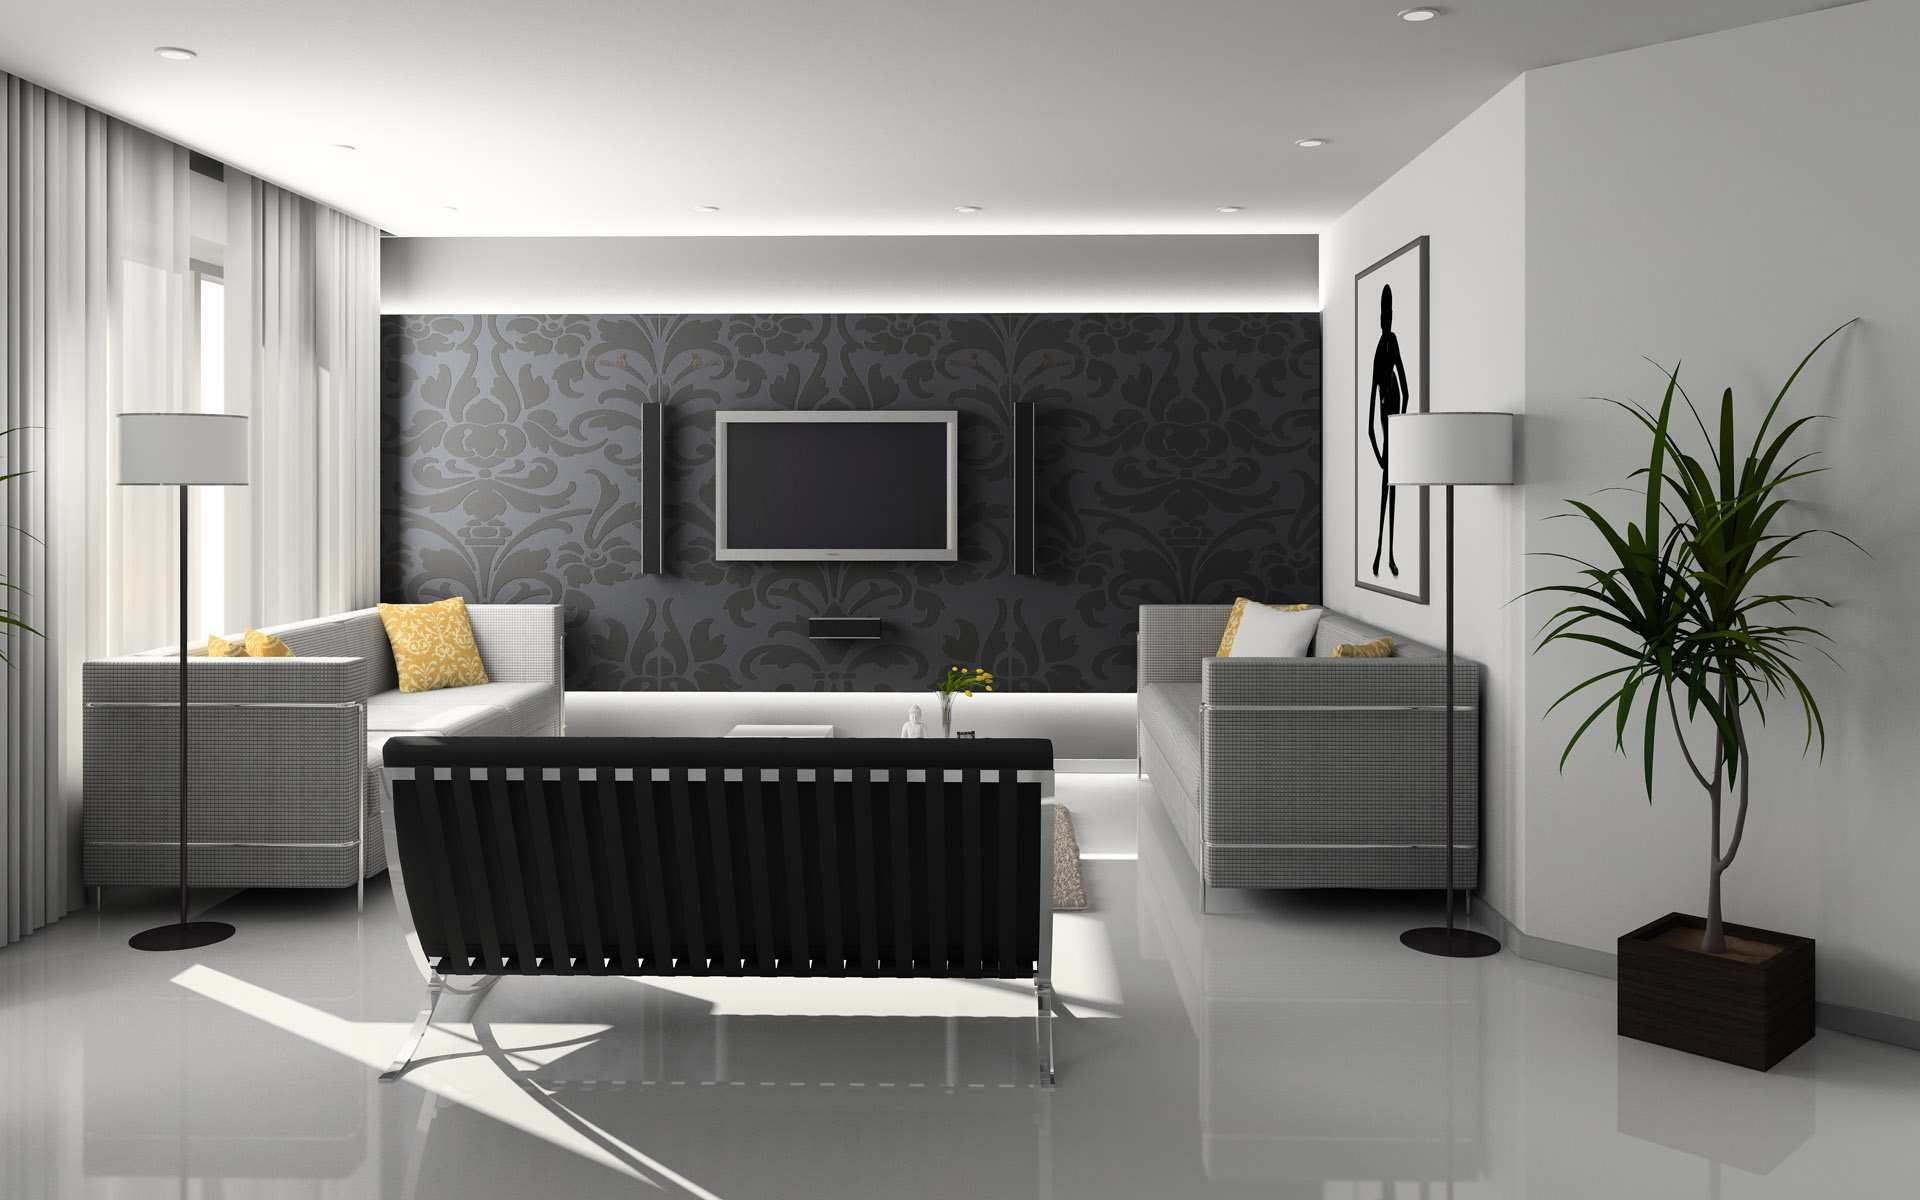 Contoh Hiasan Ruang Tamu Home Design Interior Designing Simple